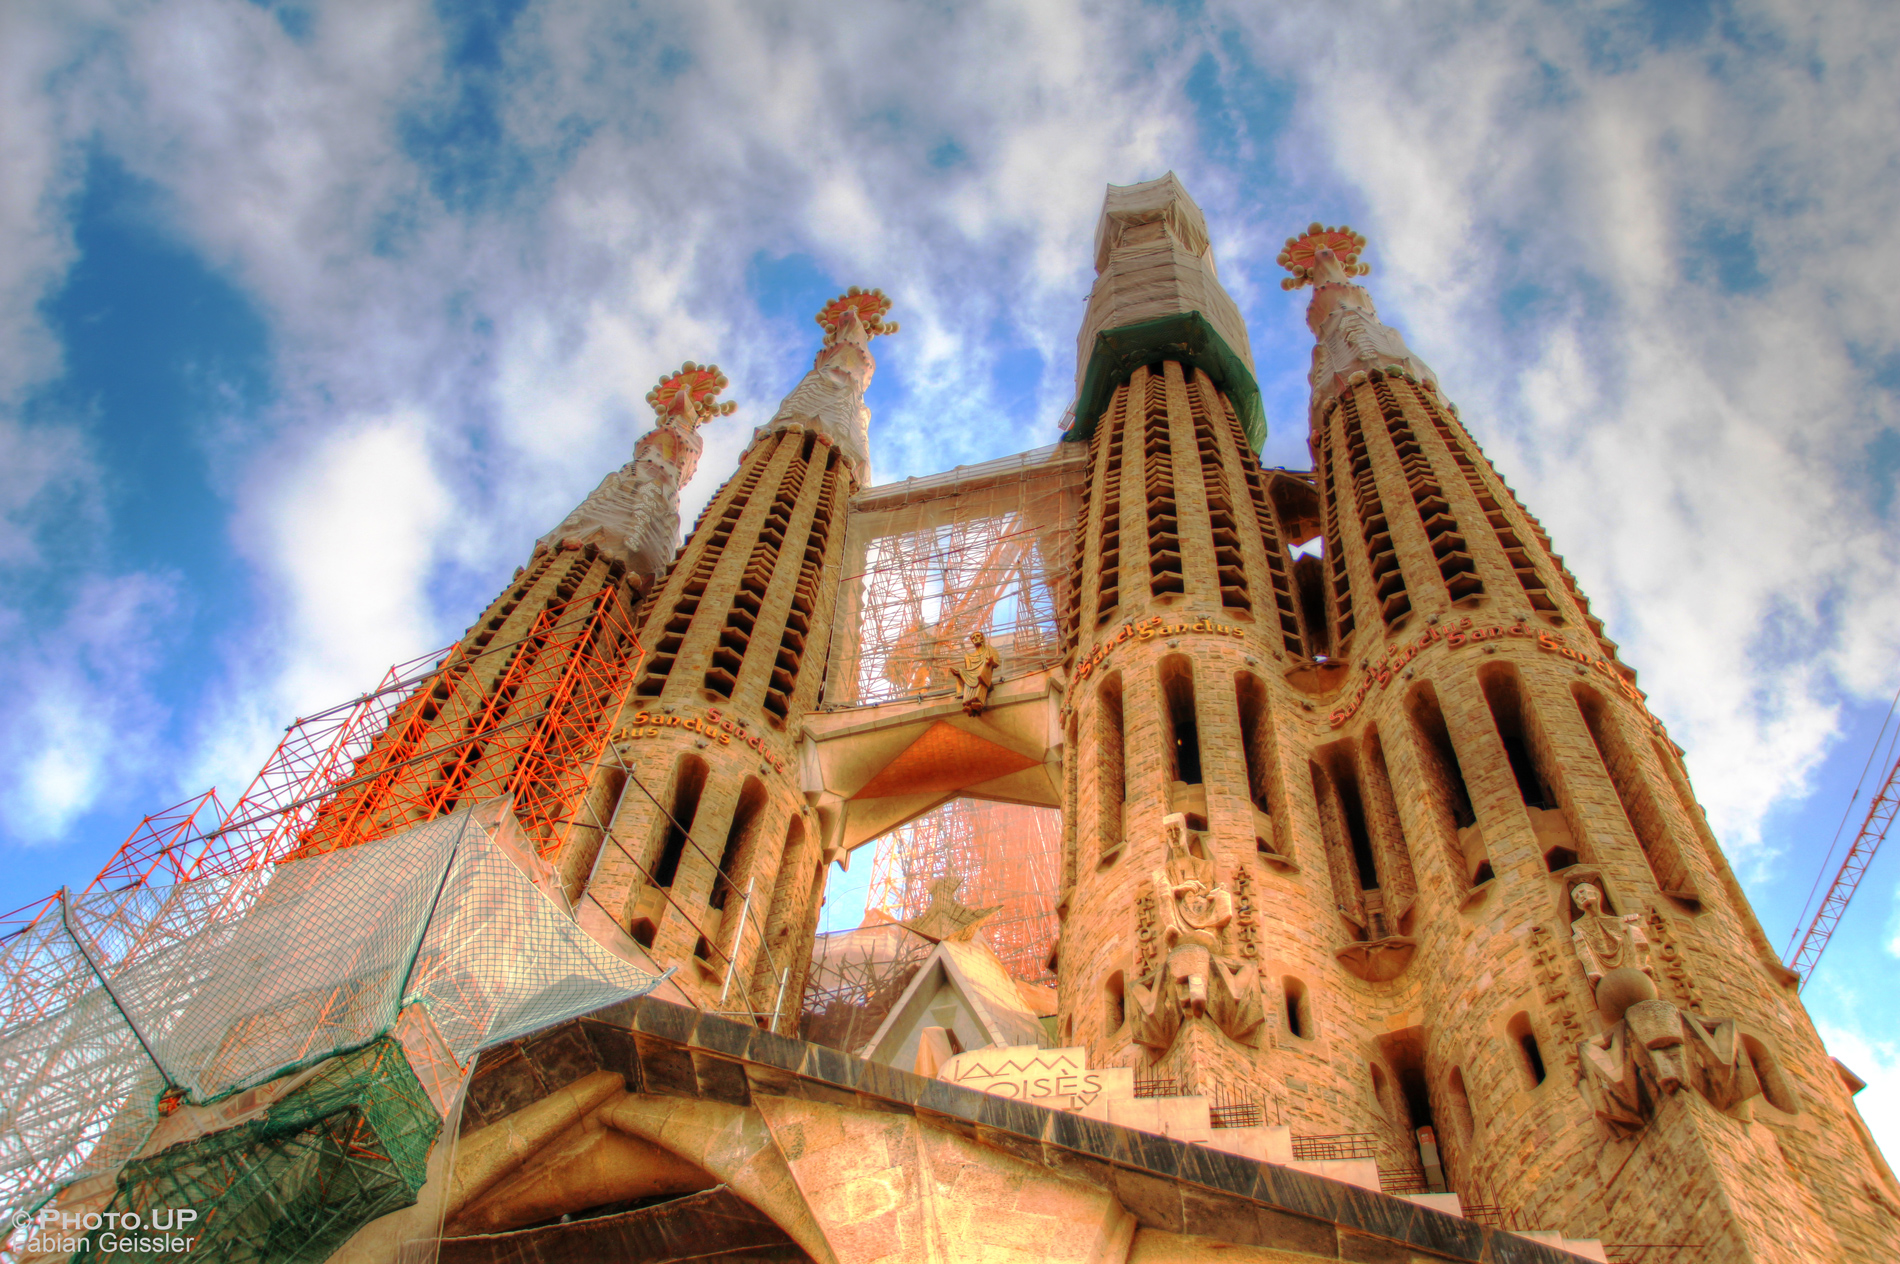 Sagrada Familia in Barcelona - Passionsfassade, UnnamedProduction, Photo.UP, Fabian Geissler